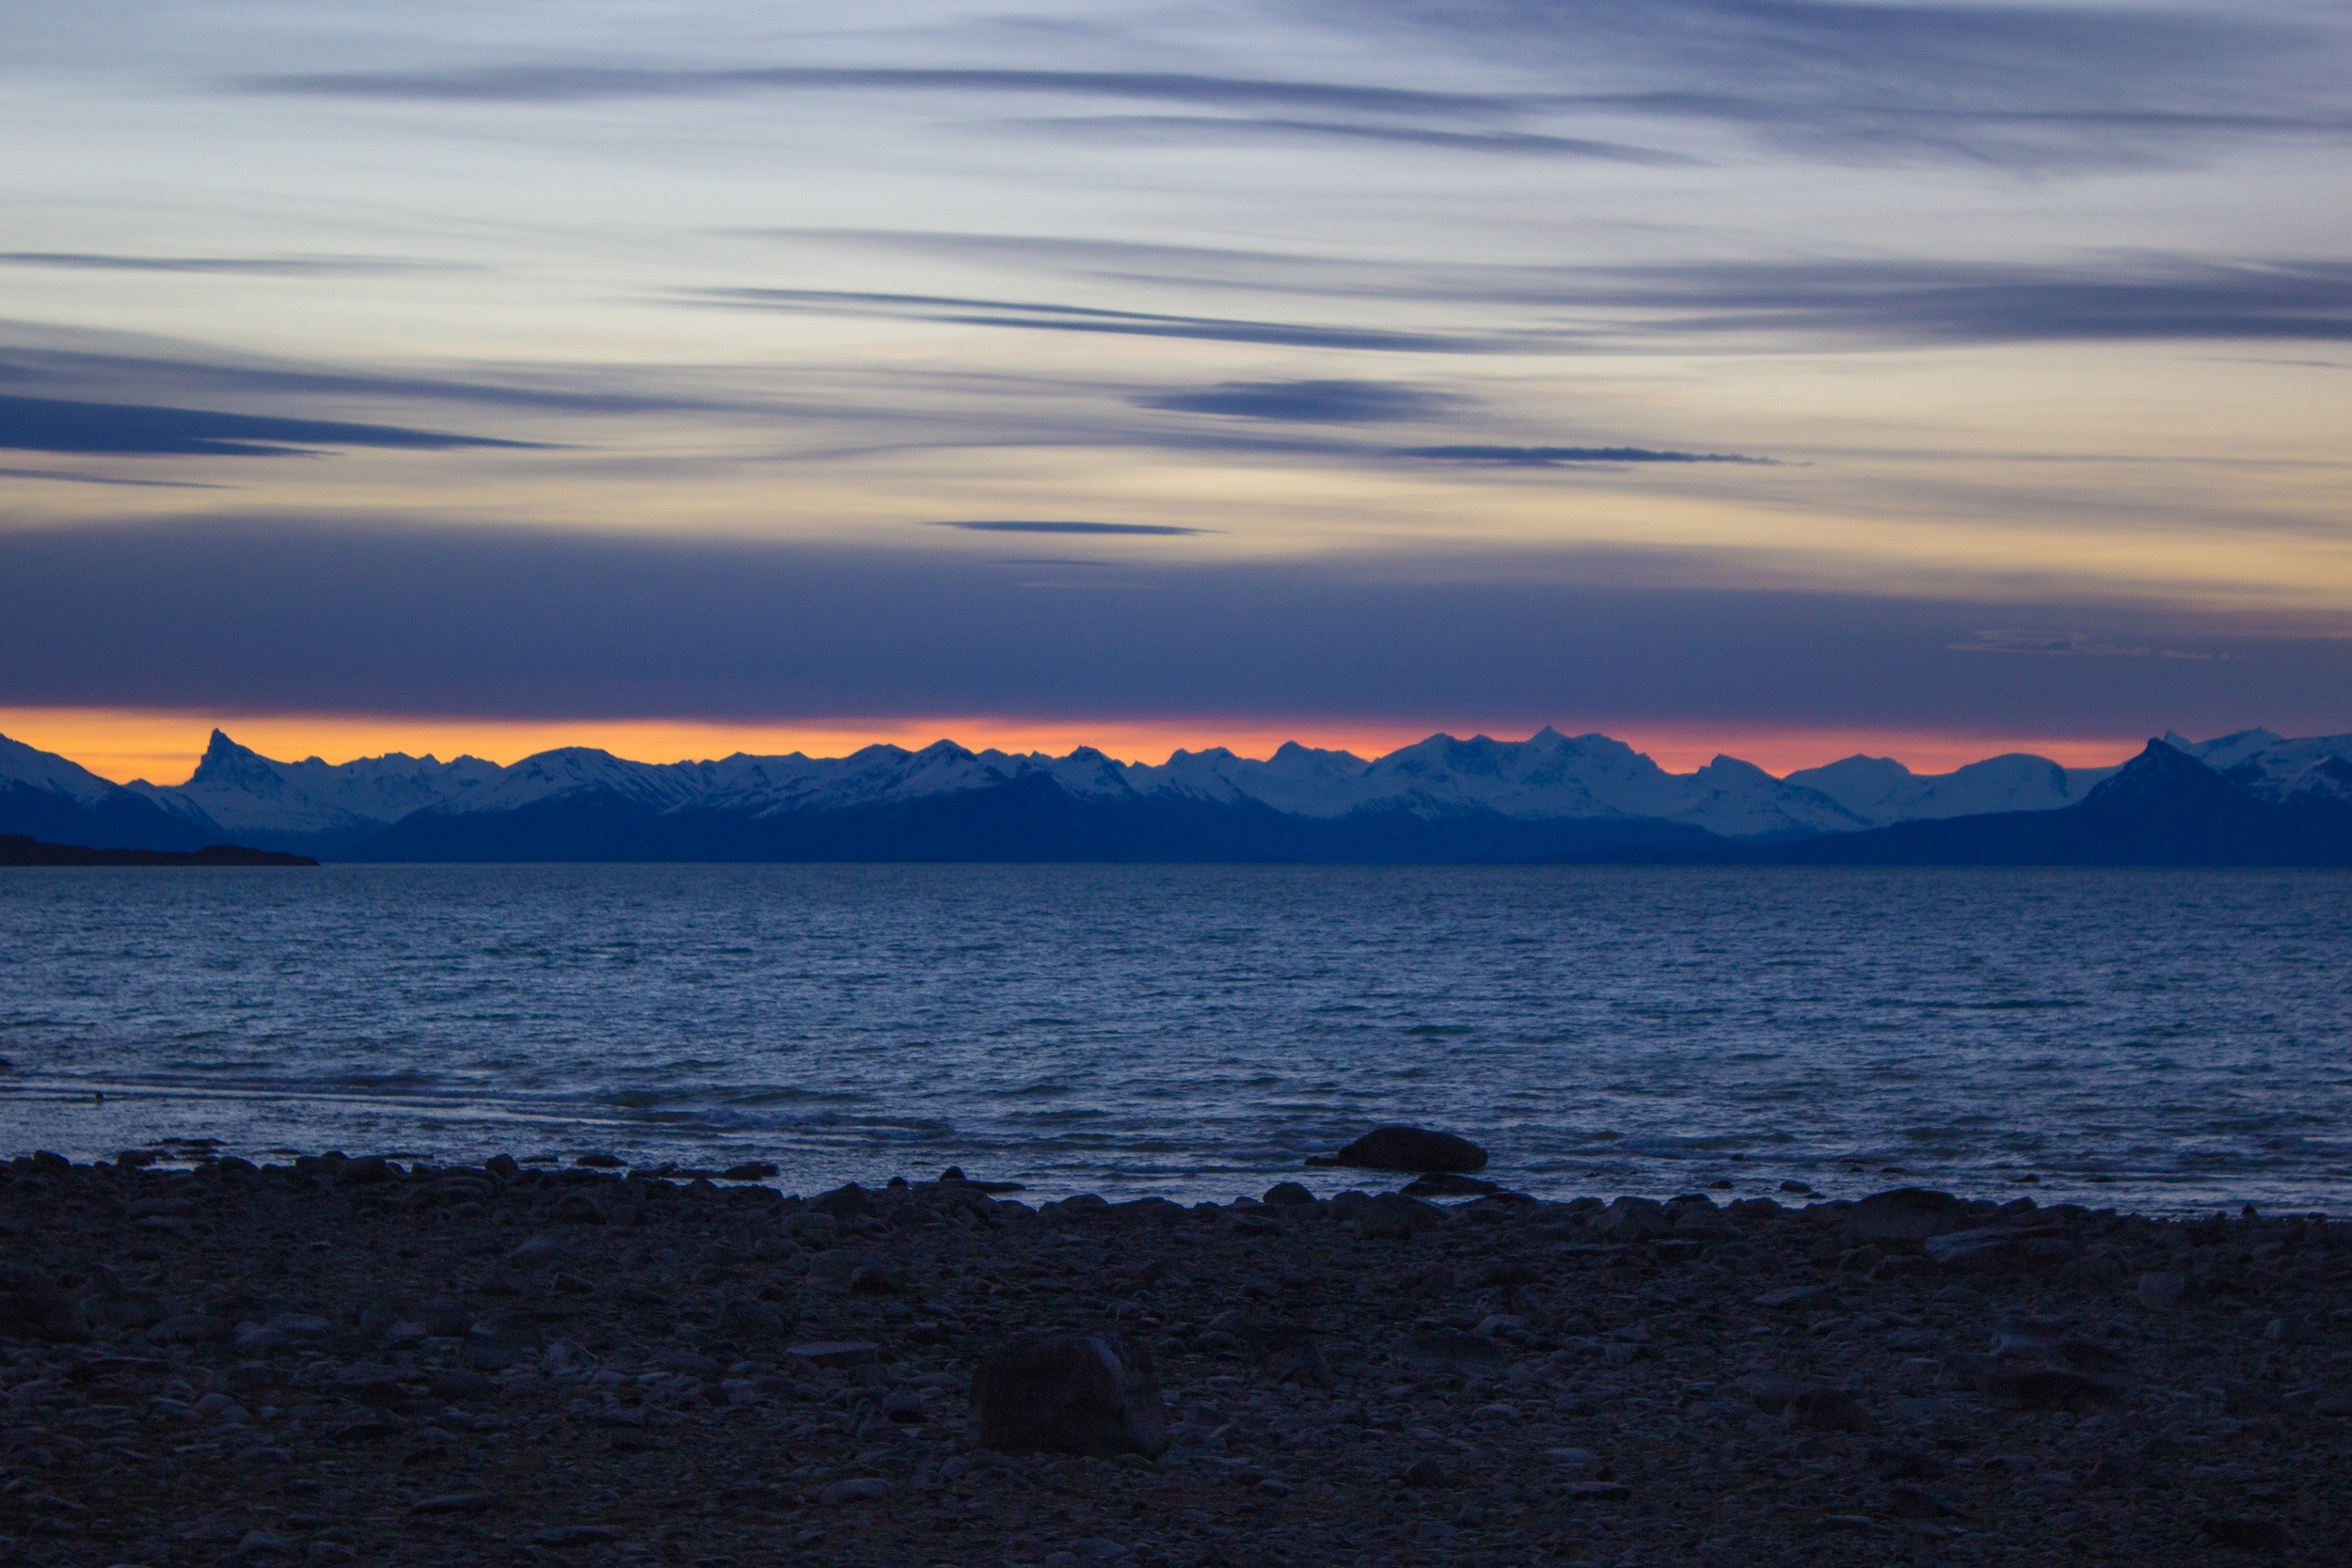 Sunset over Lago Argentino in El Calafate